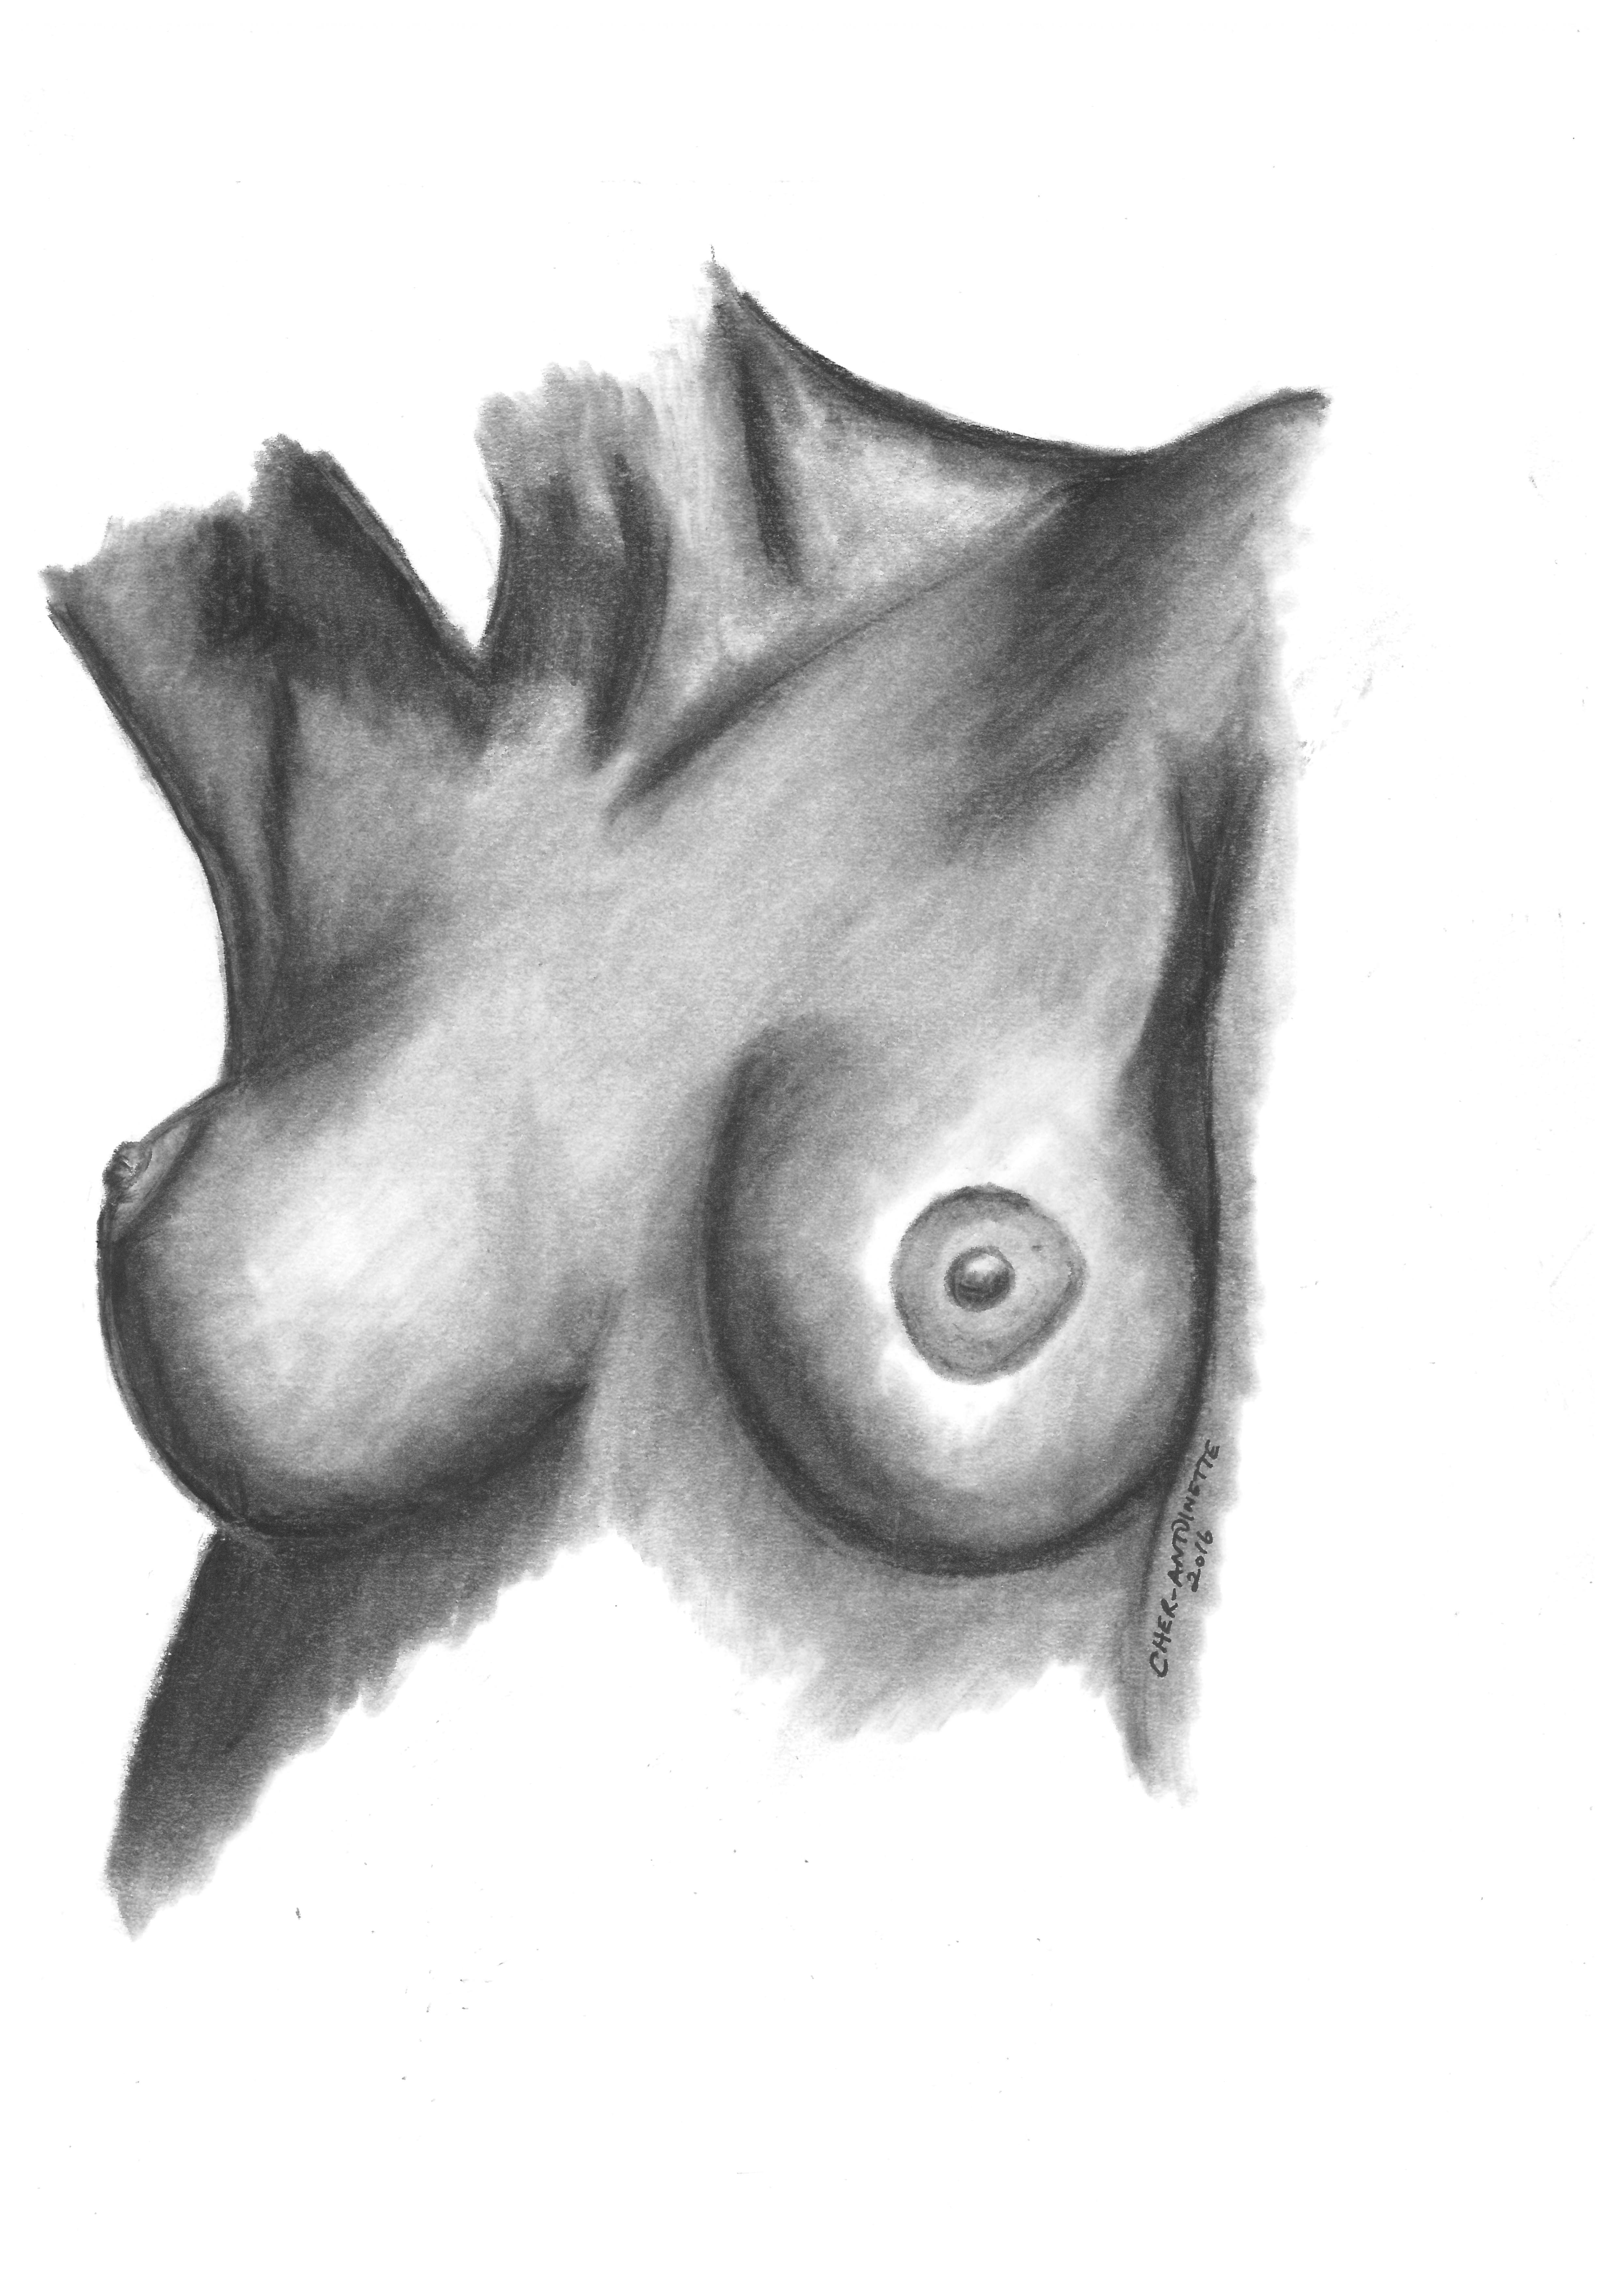 BREASTS 1